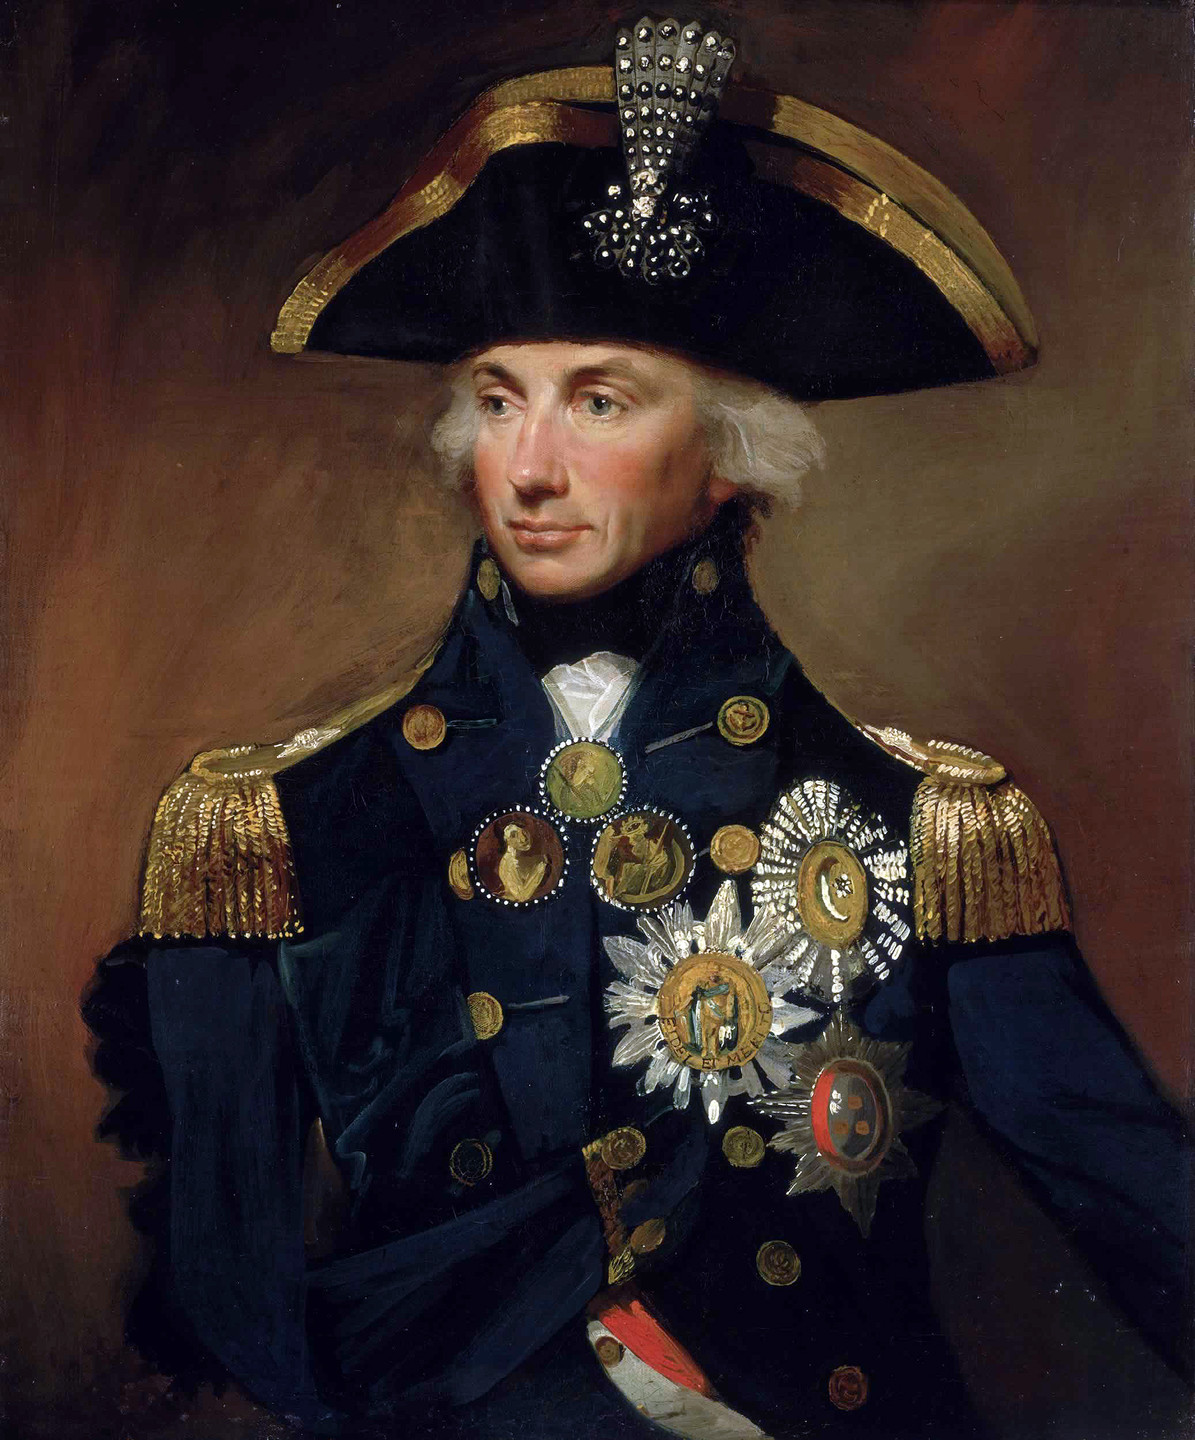 Horatio Nelson, 1st Viscount Nelson. Nelson's death at Trafalgar secured his position as one of Britain's most heroic figures